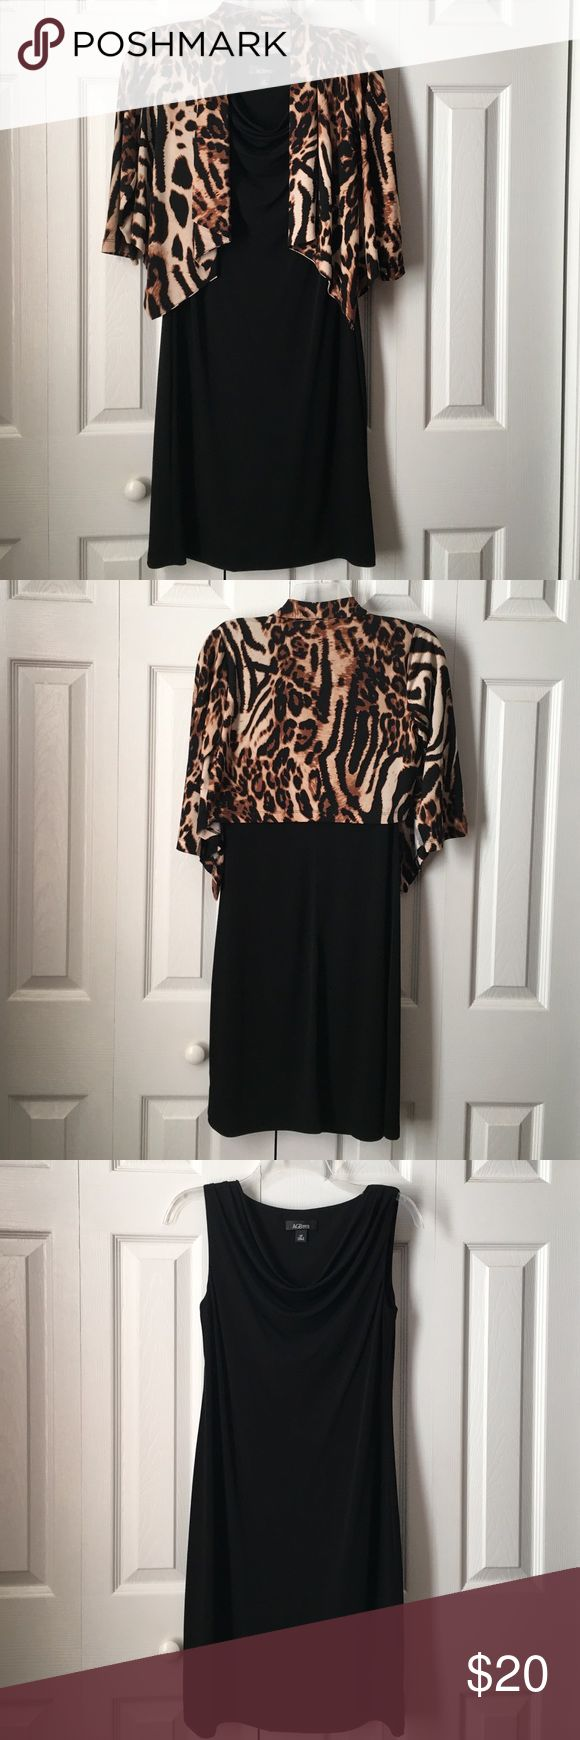 AGB Dress Petite 2 Piece Dress NWOT Brand new! Never worn! 2 piece dress. Black sleeveless A-line with drape neck and Animal Print jacket. Dress approximately 36 inches long. AGB Dress Petite Dresses